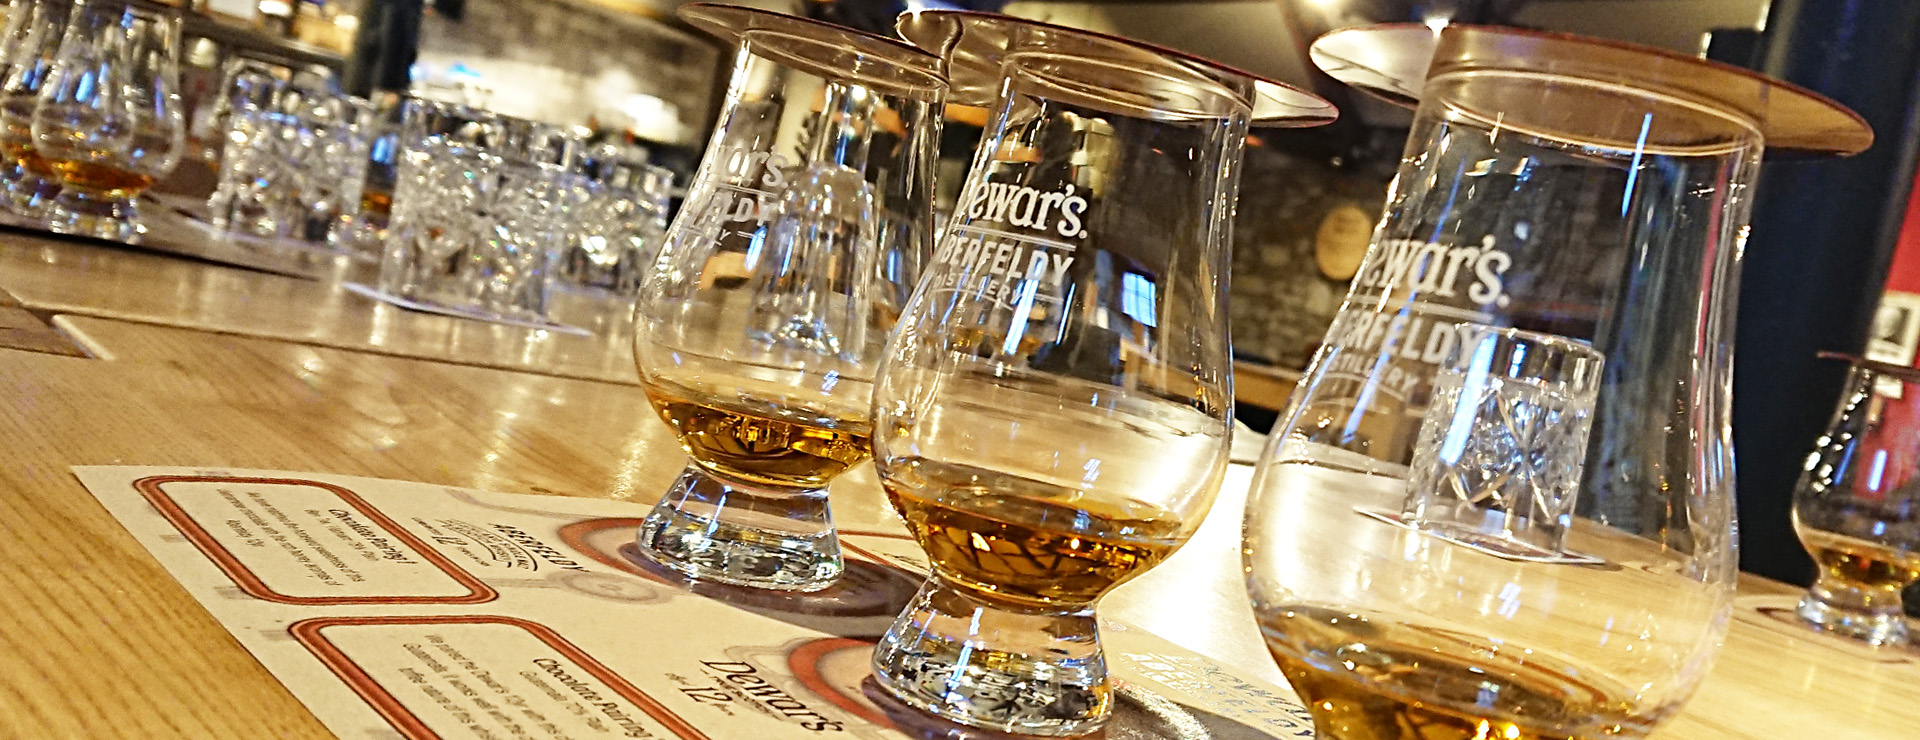 Chocolate and Whisky Tasting Tour set out at Dewar's Aberfeldy Distillery